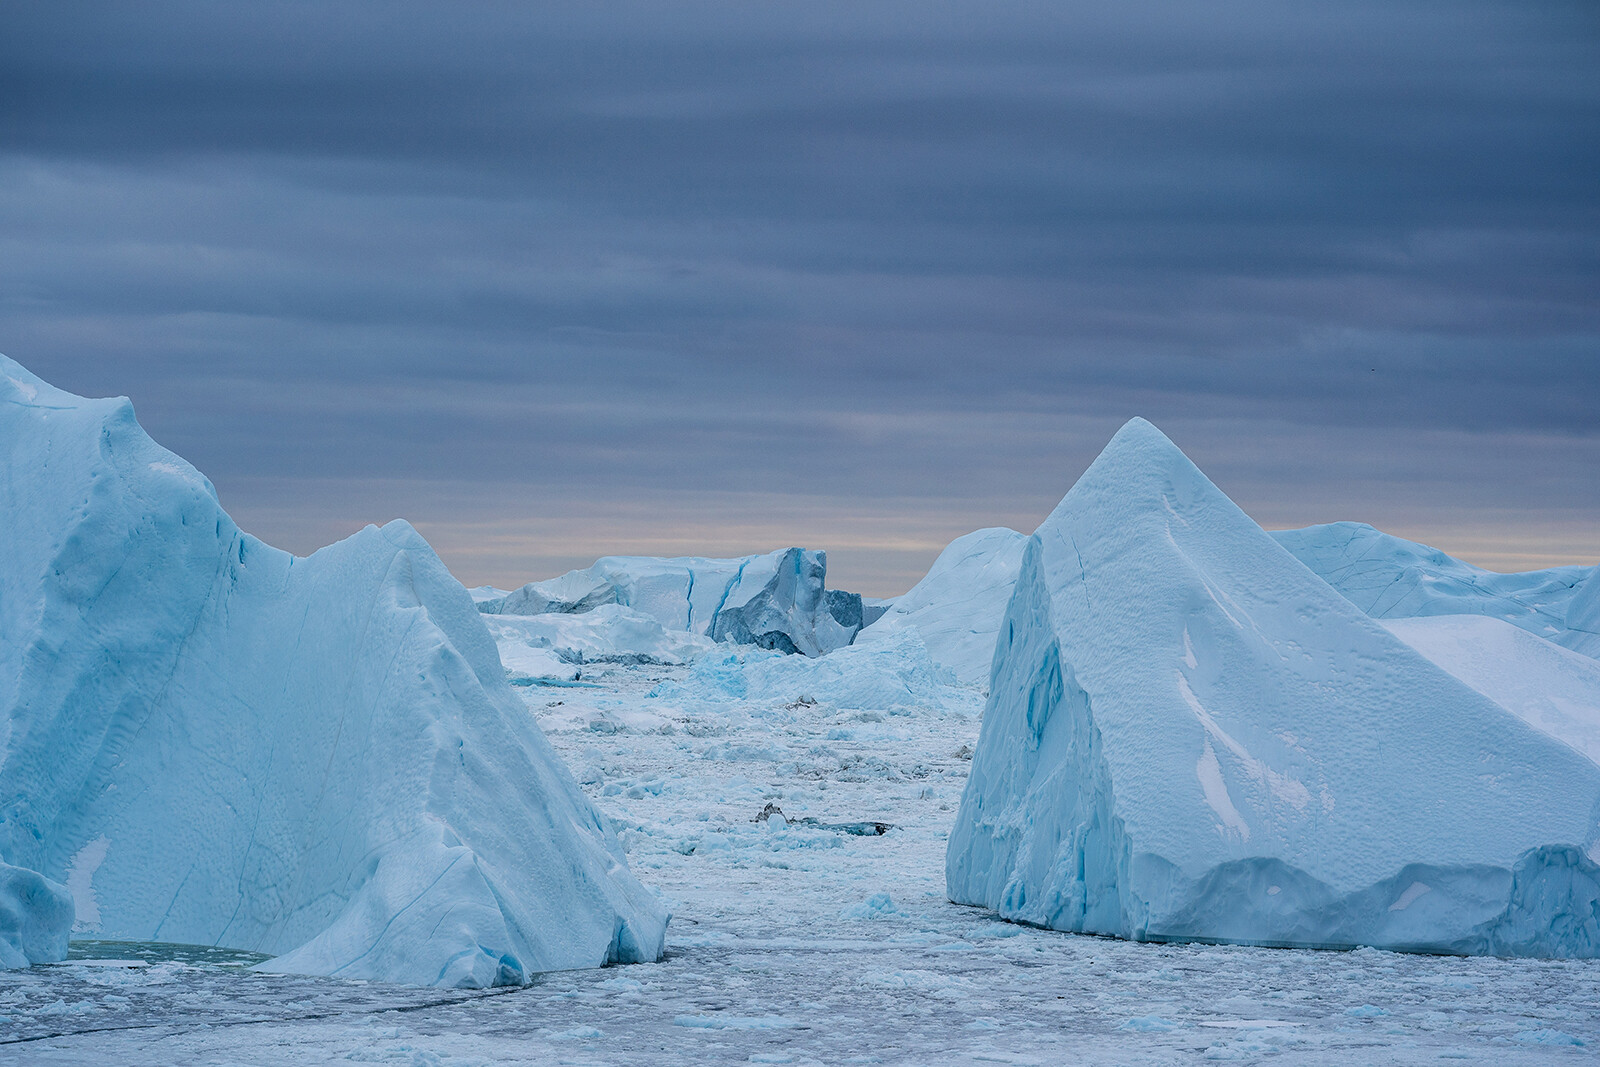 The amount of Greenland ice that melted on Tuesday could cover Florida in 2 inches of water